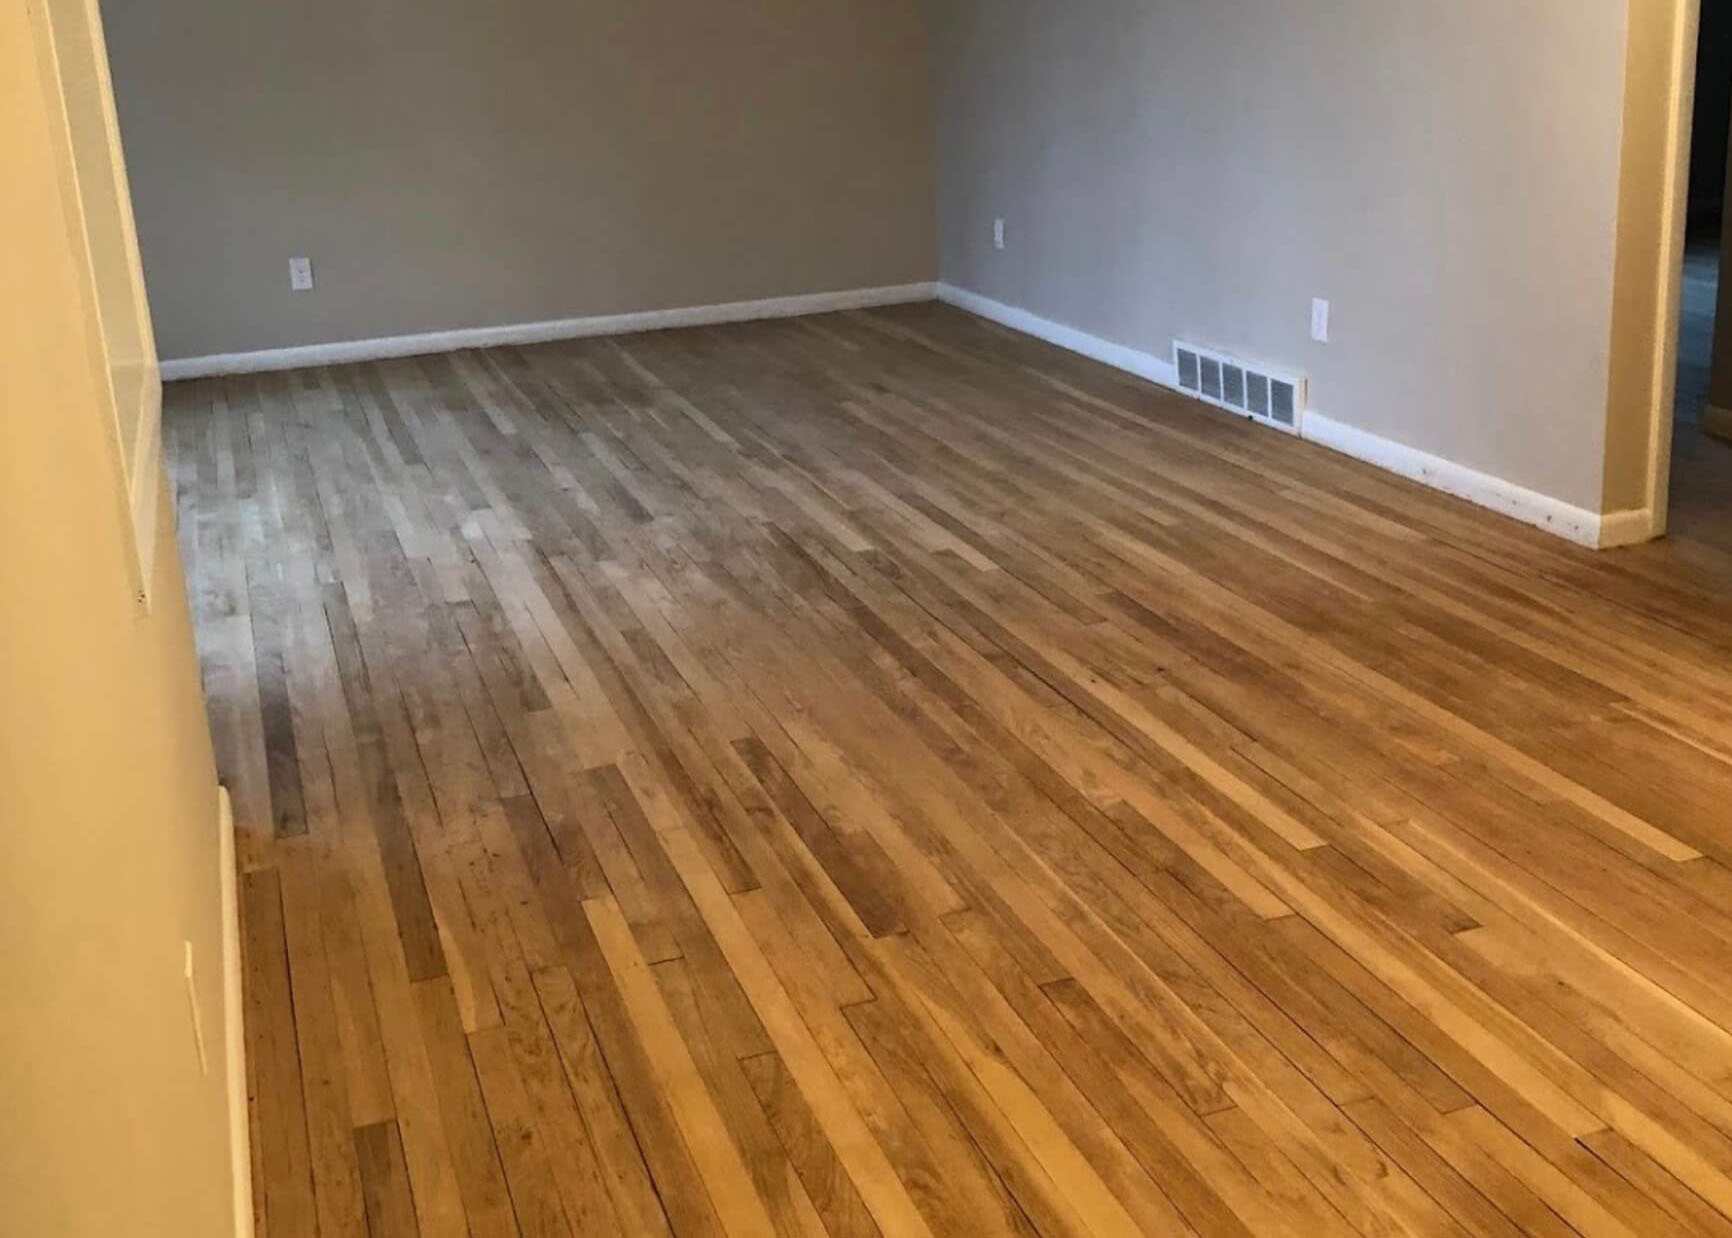 wood floor in need of resurfacing